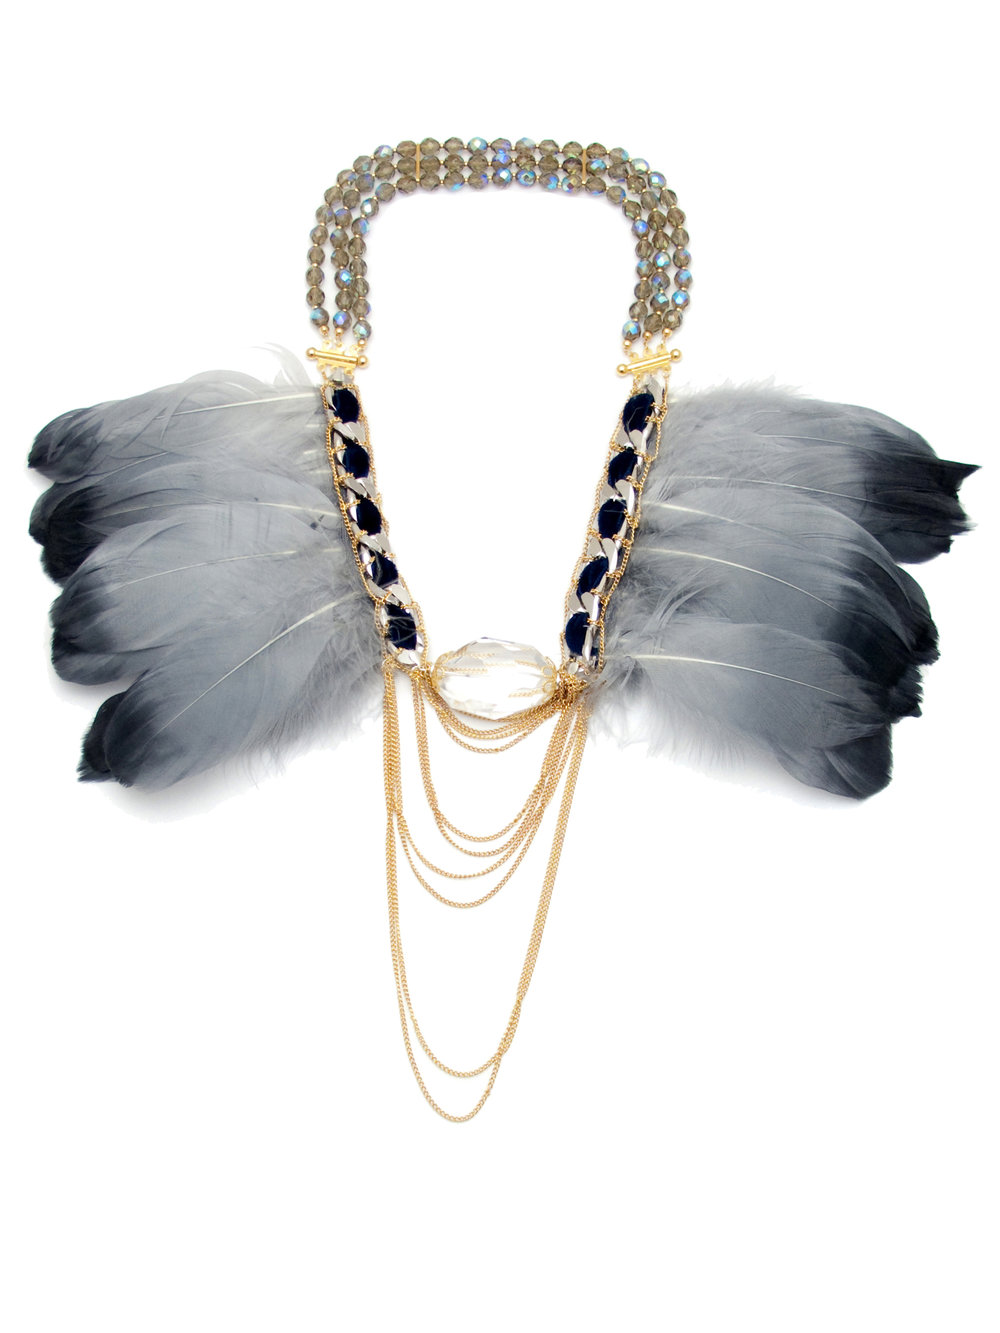 021 Goose Feather Necklace.jpg